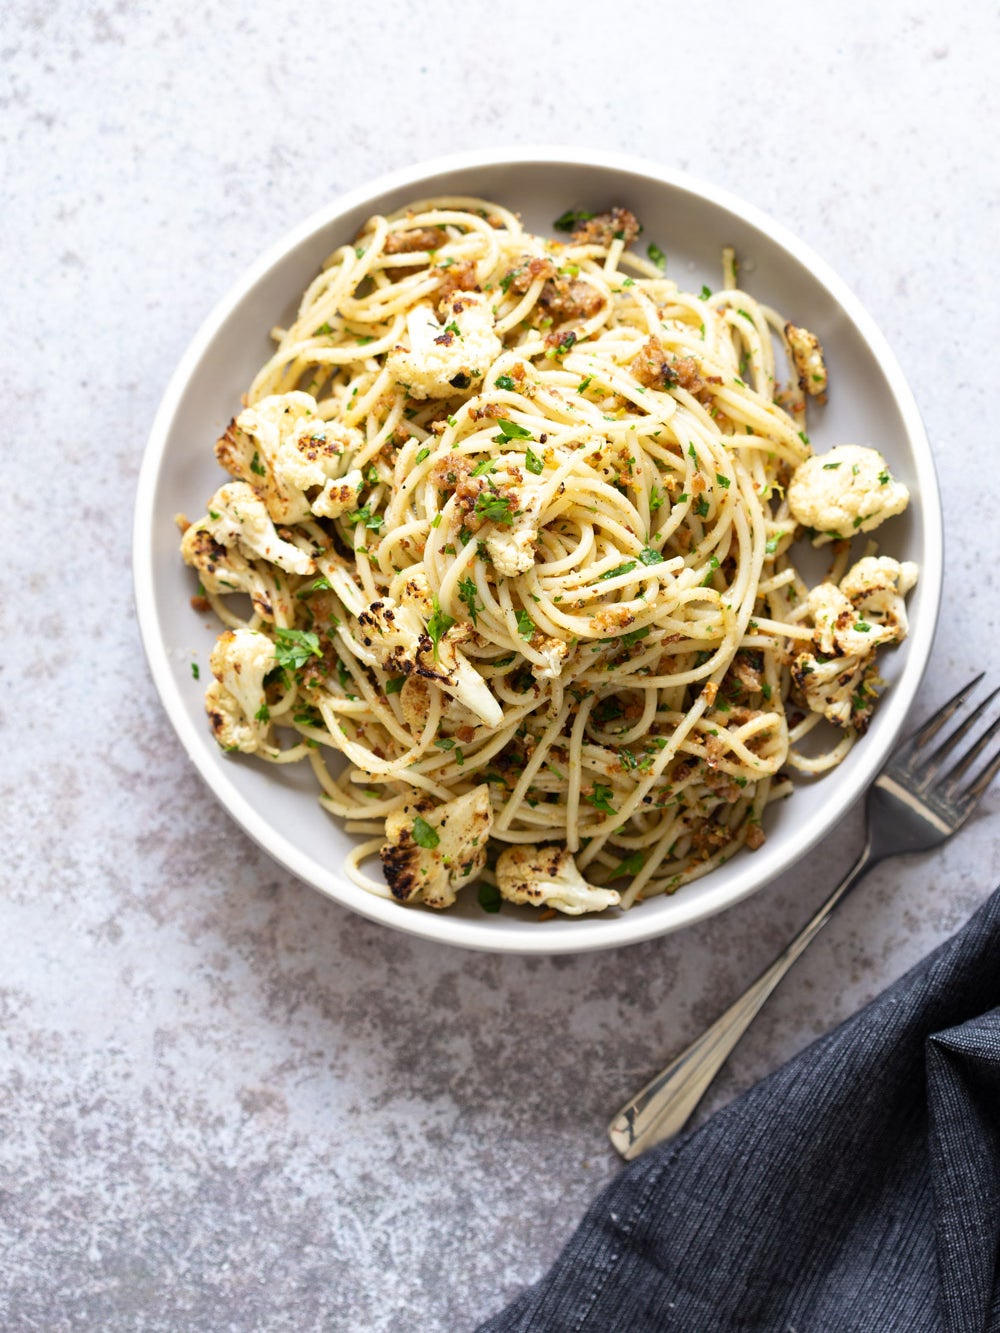 This Ingredient Makes All of My Pasta Dishes Better